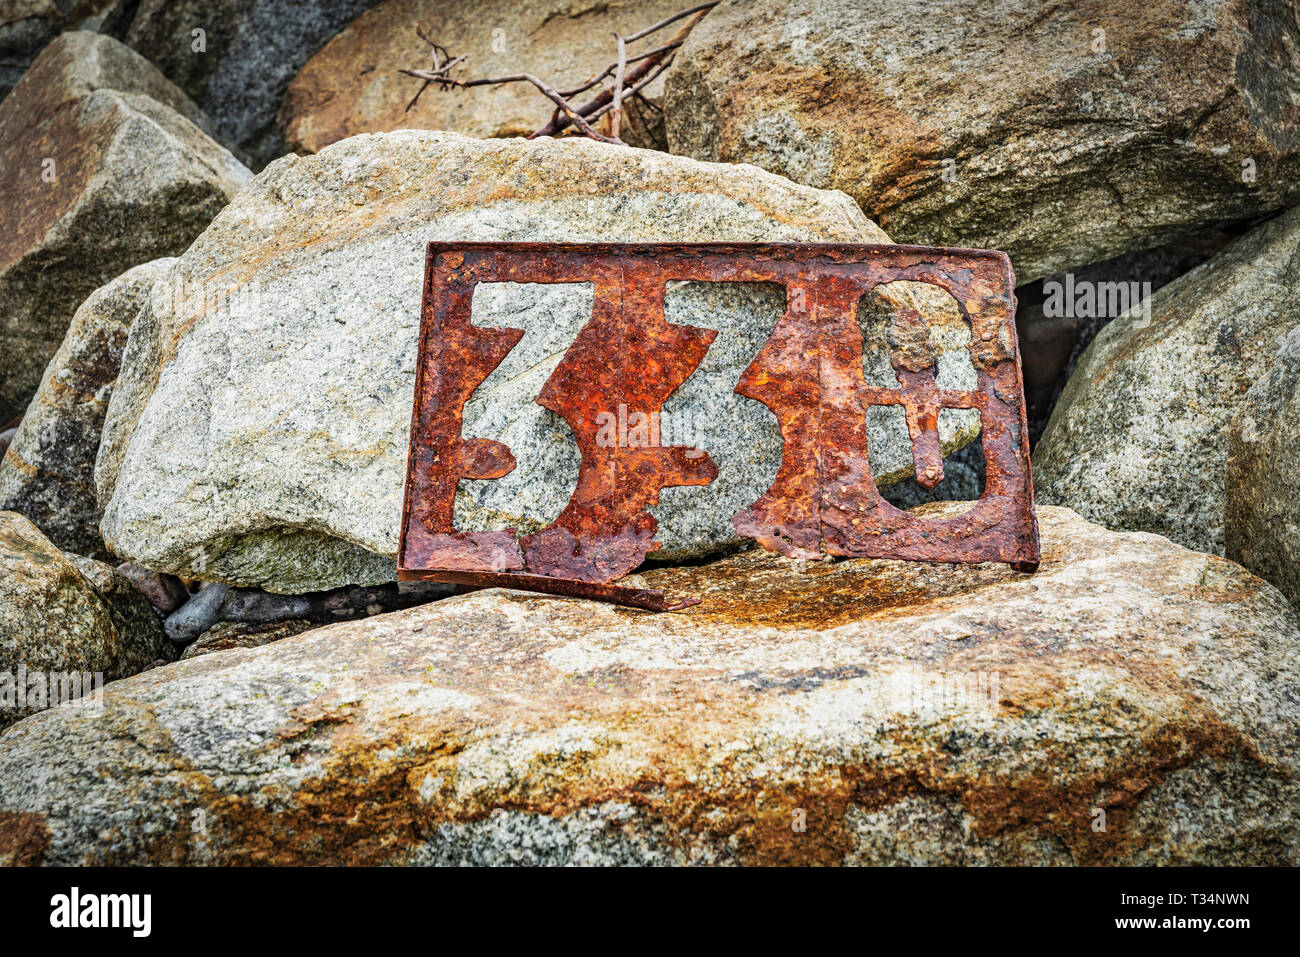 A rusted signpost with the number 330 stands on stones. The Sign is located on the Beach of the Baltic Sea in Kolobrzeg,West Pomeranian, Poland, Europ Stock Photo